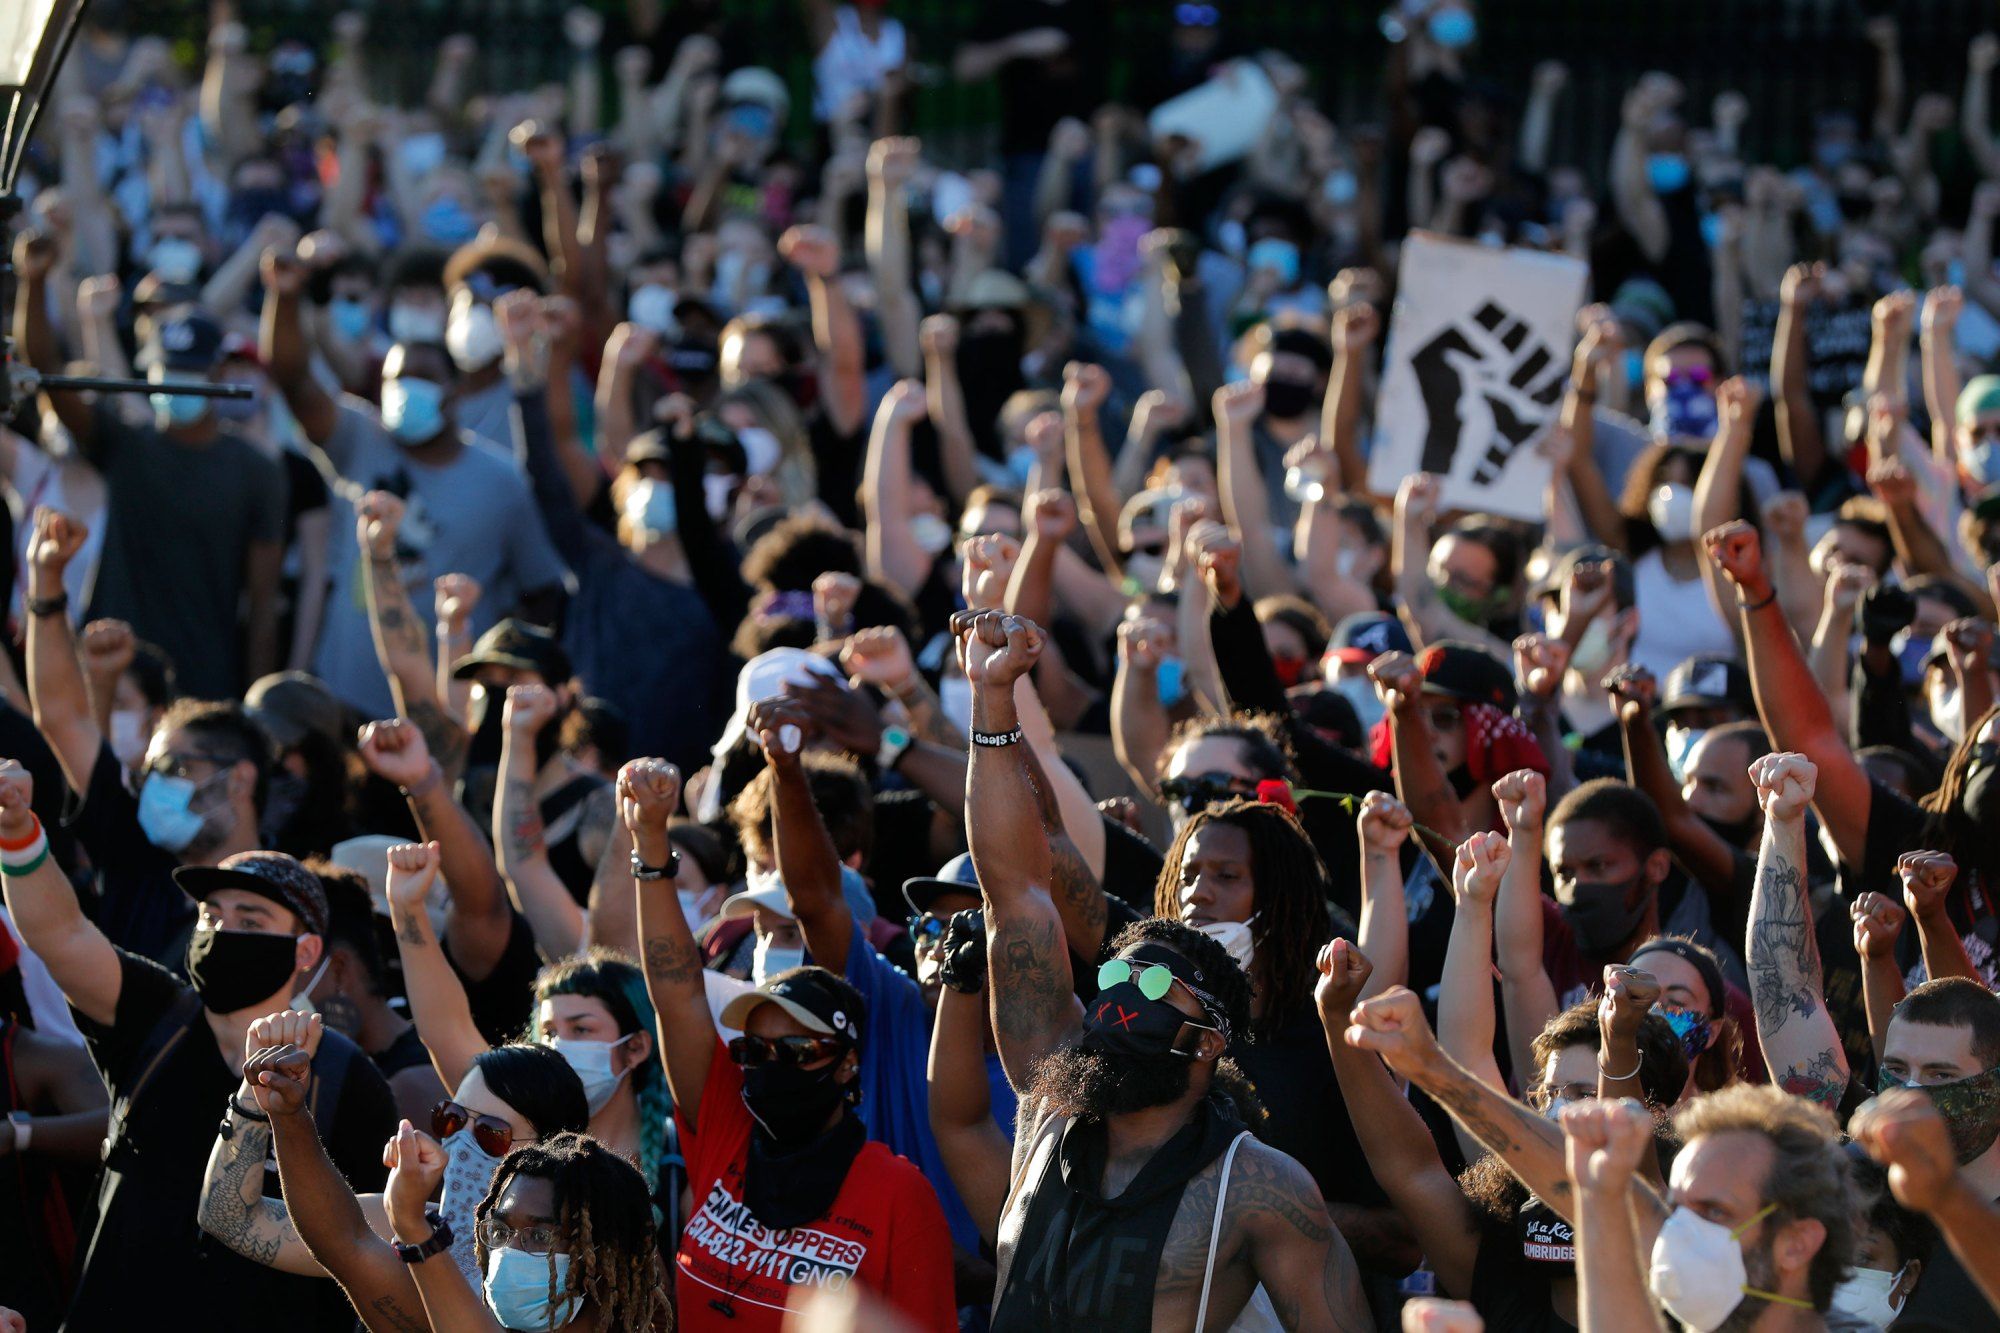 People raise their fists during a rally outside Jackson Square in New Orleans on Friday. George Floyd's second memorial will take place Saturday in Hoke County, North Carolina. (Gerald Herbert/AP via CNN Wire)